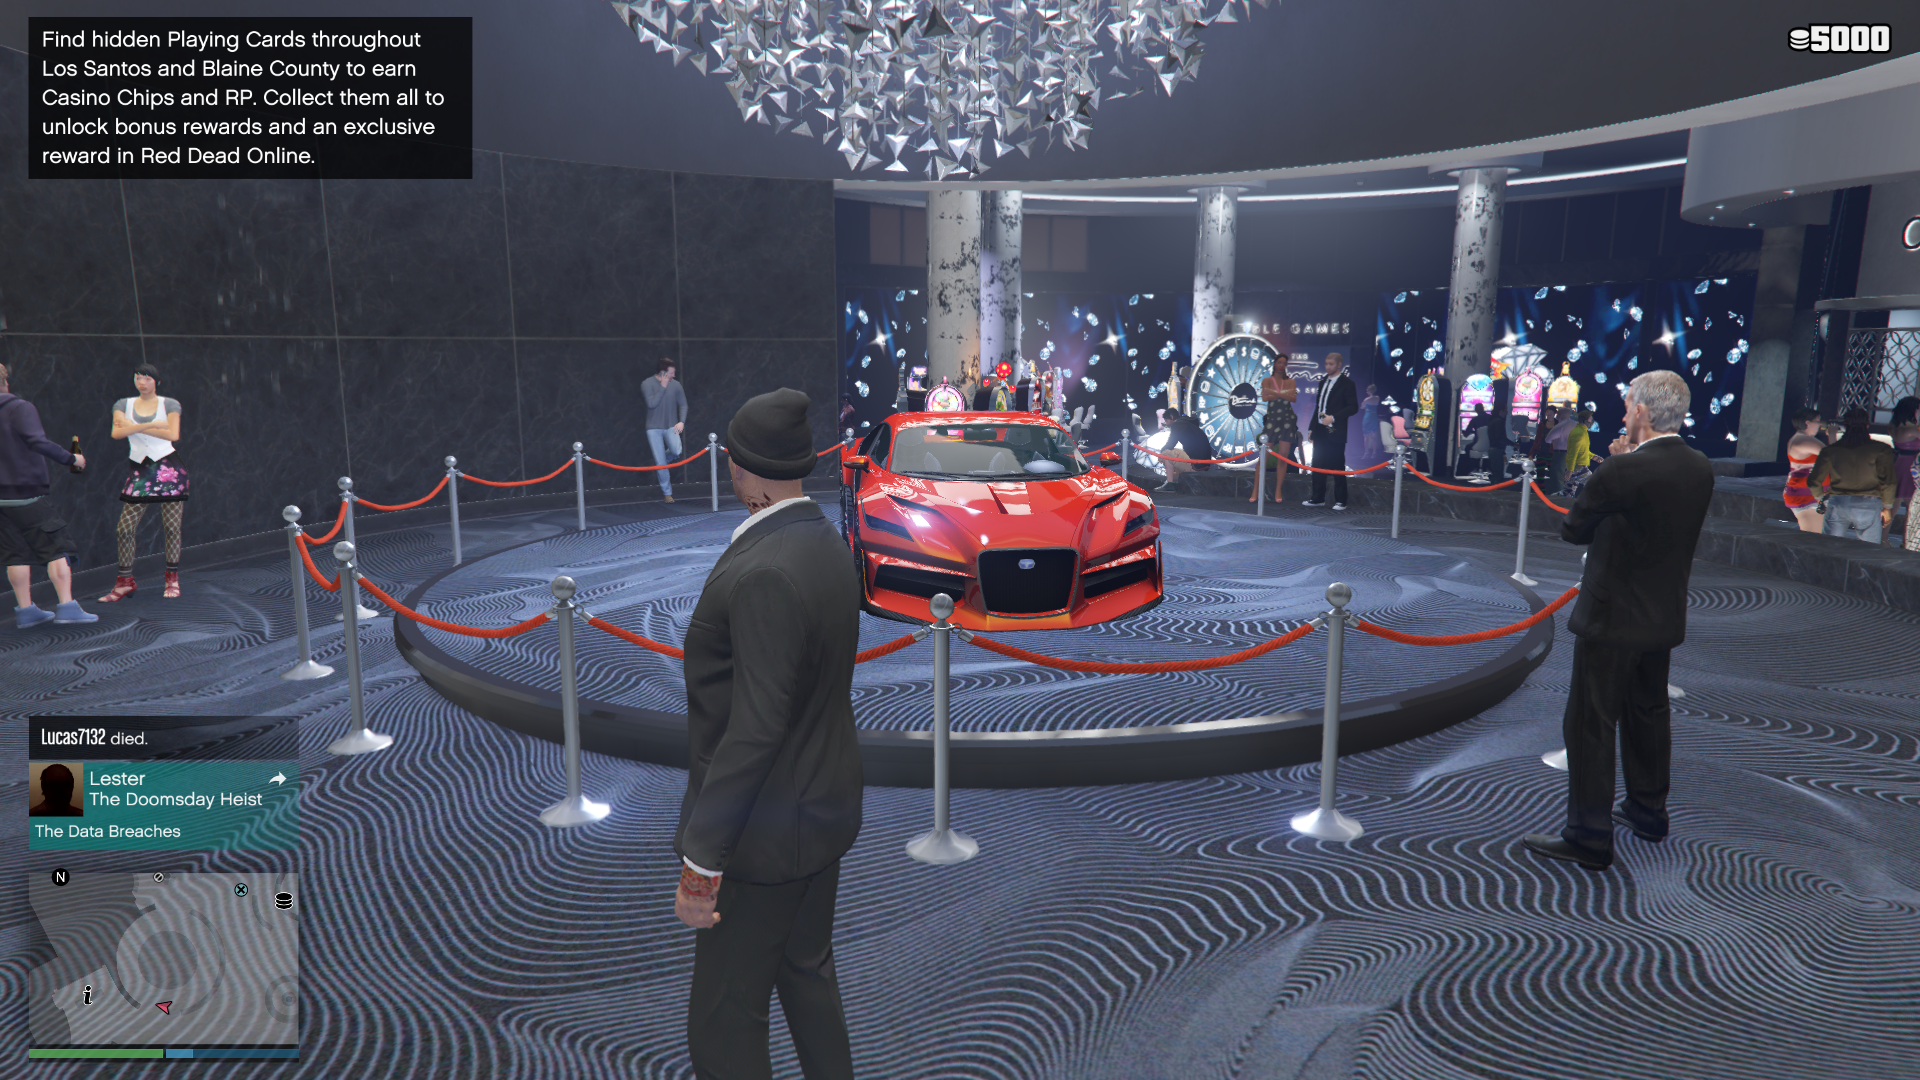 Gta Online S Casino Update Review Waking Up In The Toilets And